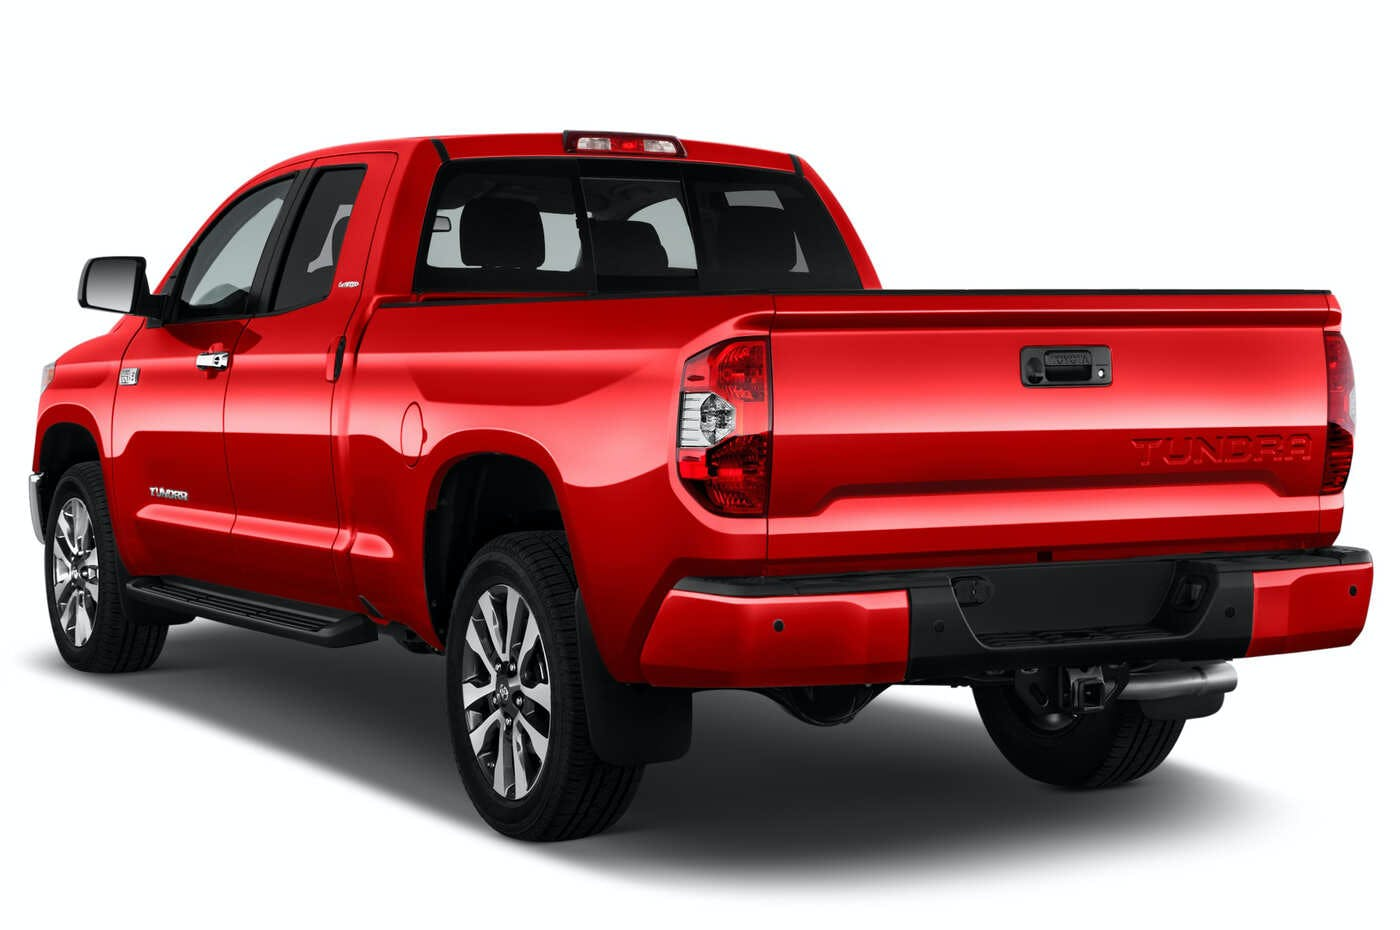 2019 Toyota Tundra Comparisons, Reviews & Pictures | TrueCar